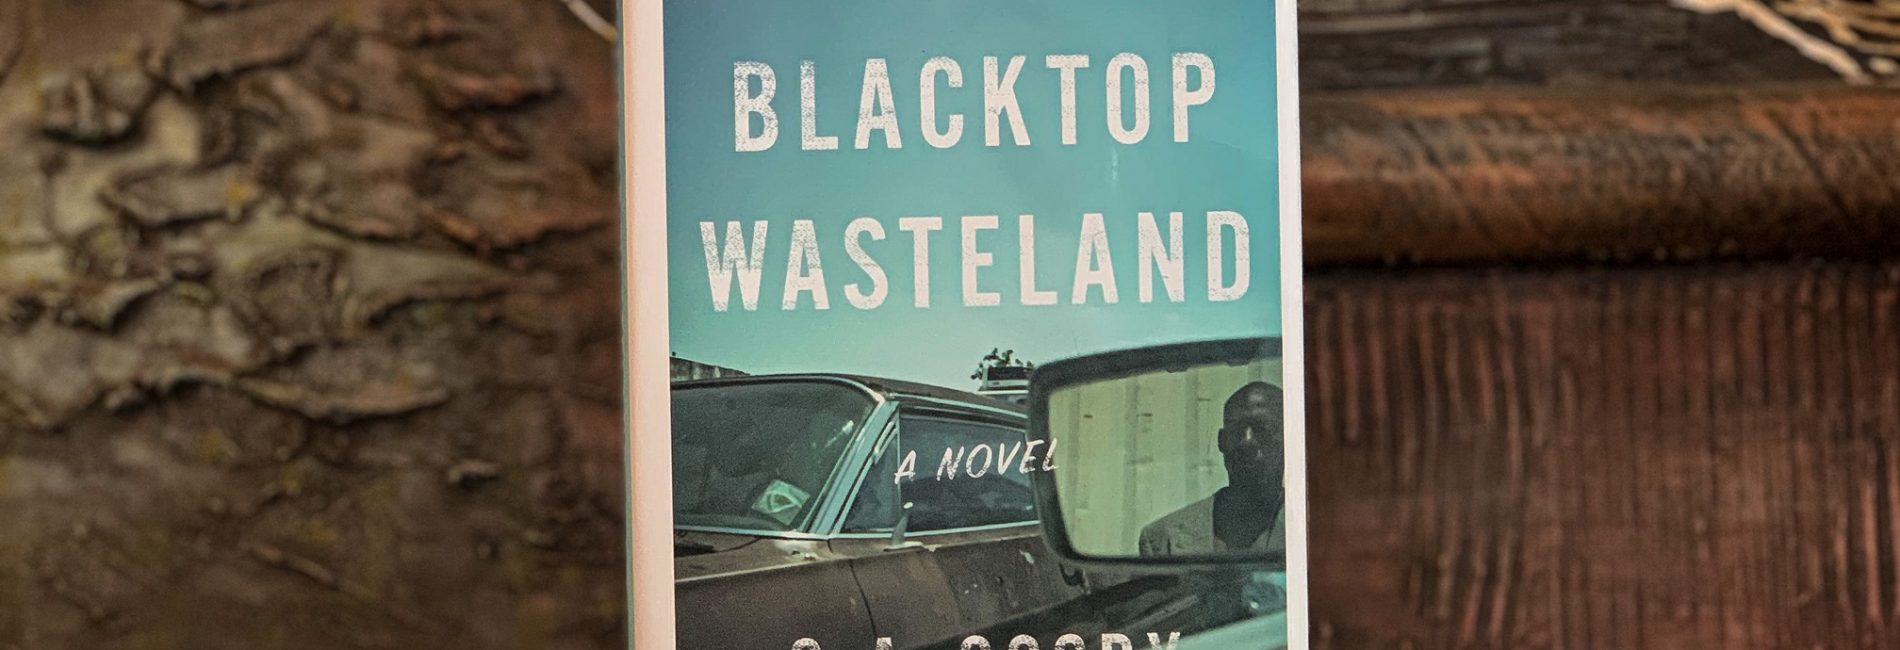 THE ZEG BOOKCLUB: BLACKTOP WASTELAND